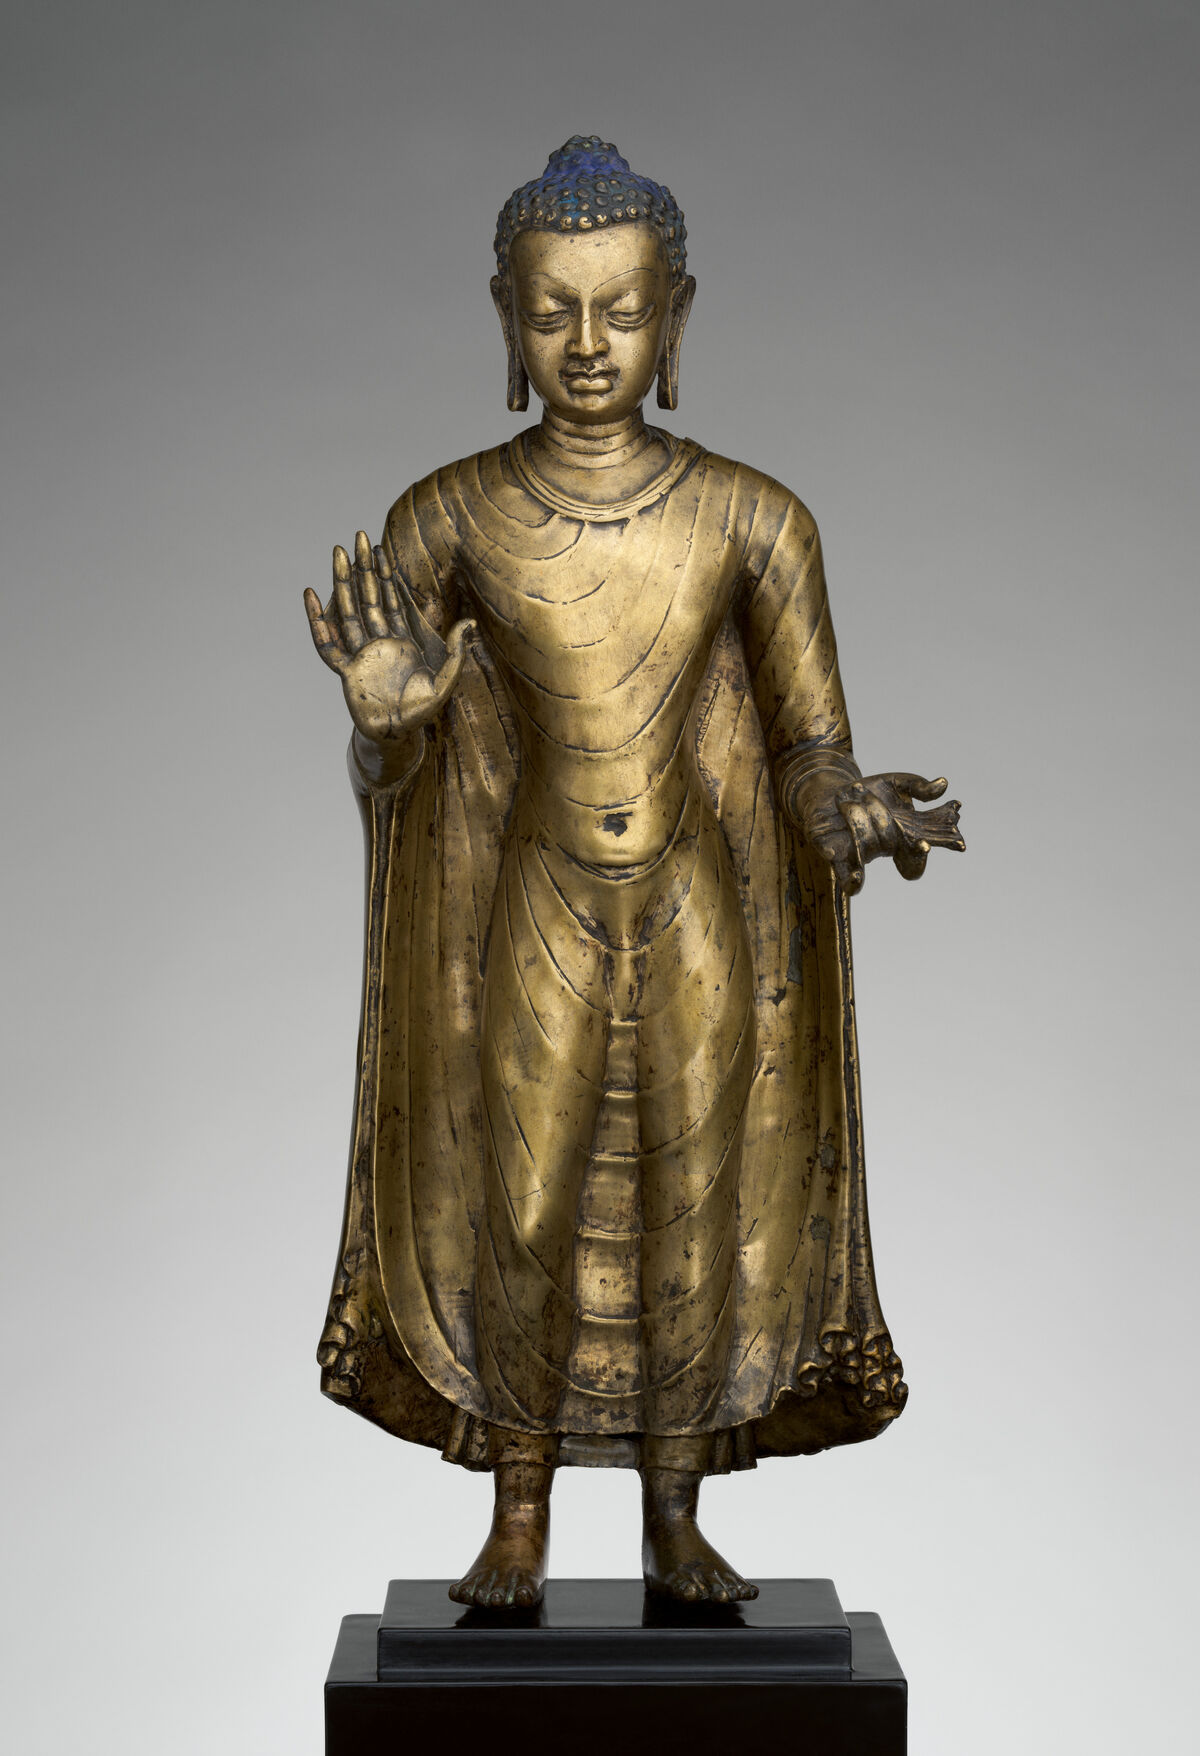 Buddha, late 6th–early 7th century, India (probably Bihar). Courtesy of The Metropolitan Museum of Art.